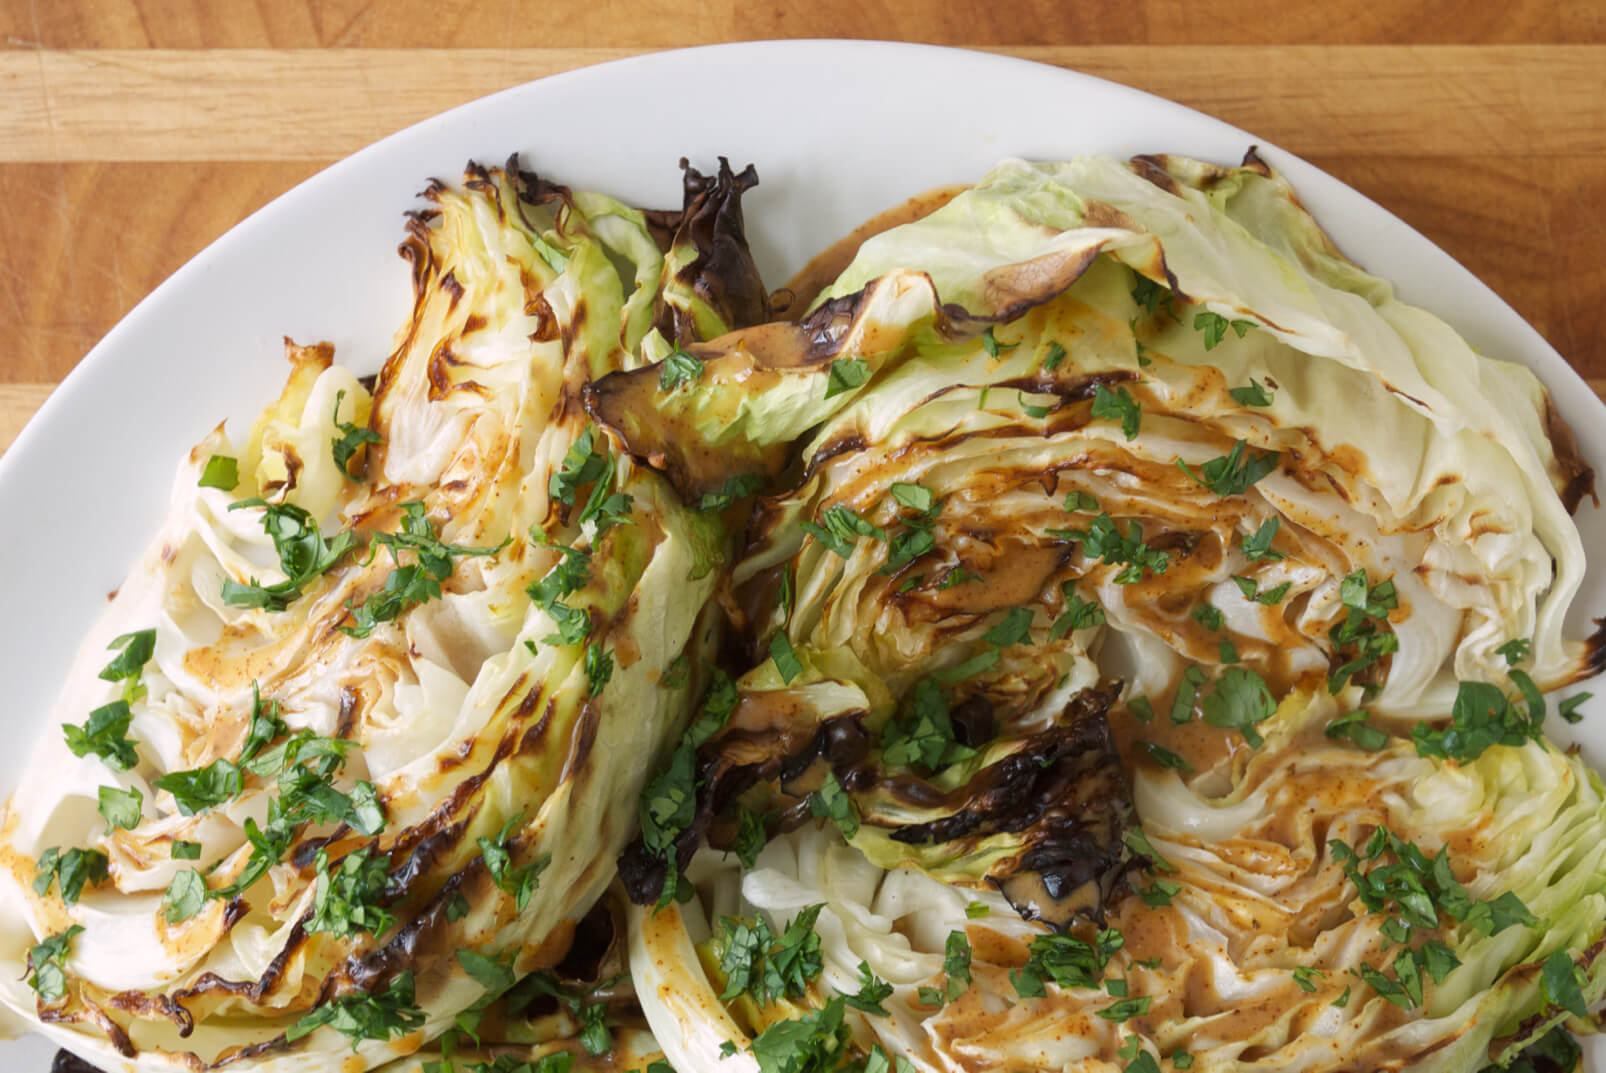 Warm Cabbage Salad with Chipotle-Lime-Honey Vinaigrette